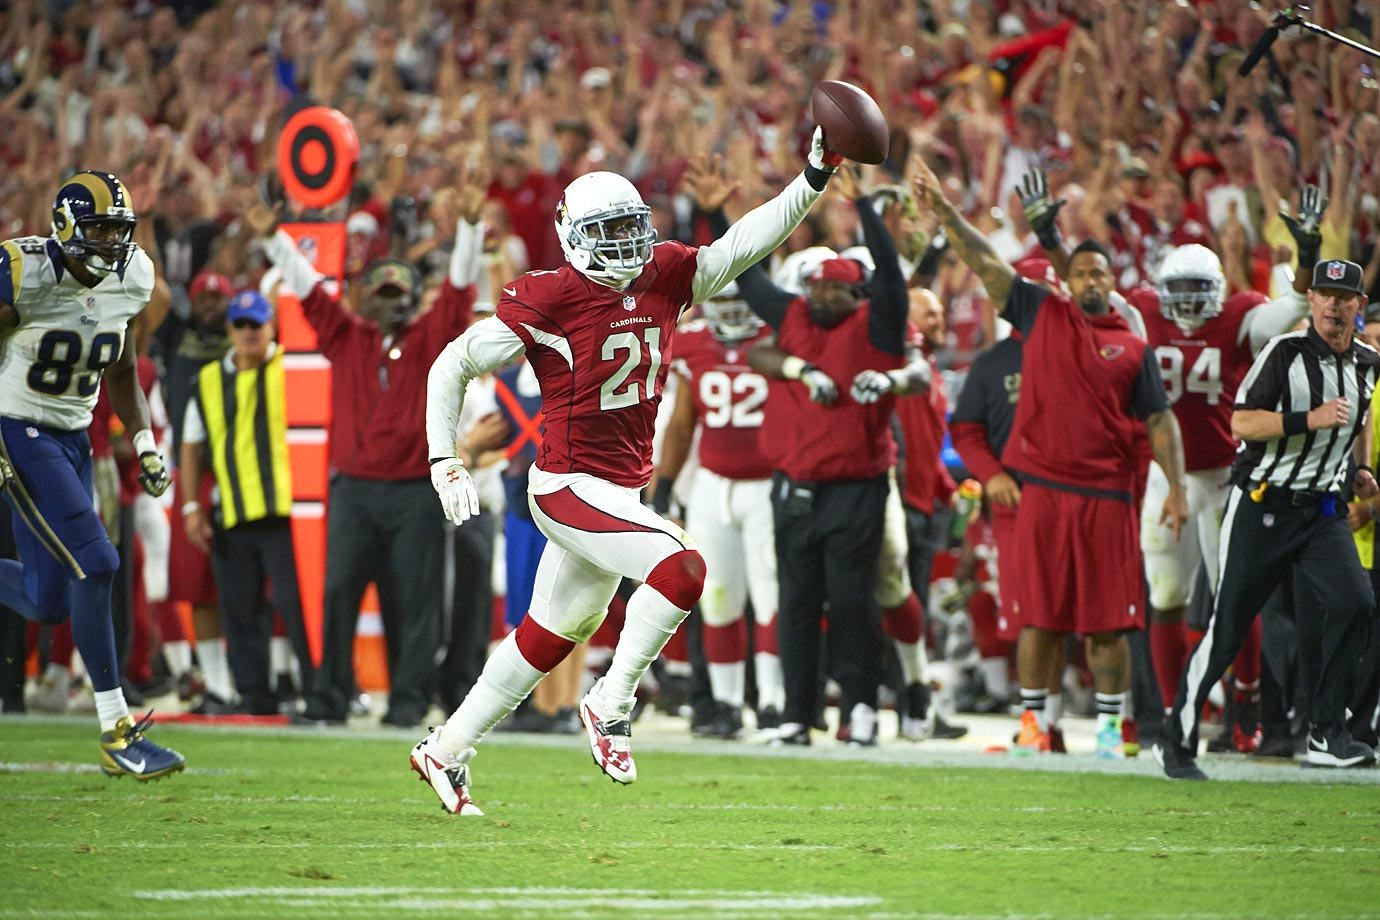 The Arizona Cardinals cornerback has made five Pro Bowls in five seasons. Peterson returned four punts for touchdowns his rookie year and has 17 interceptions in his career.